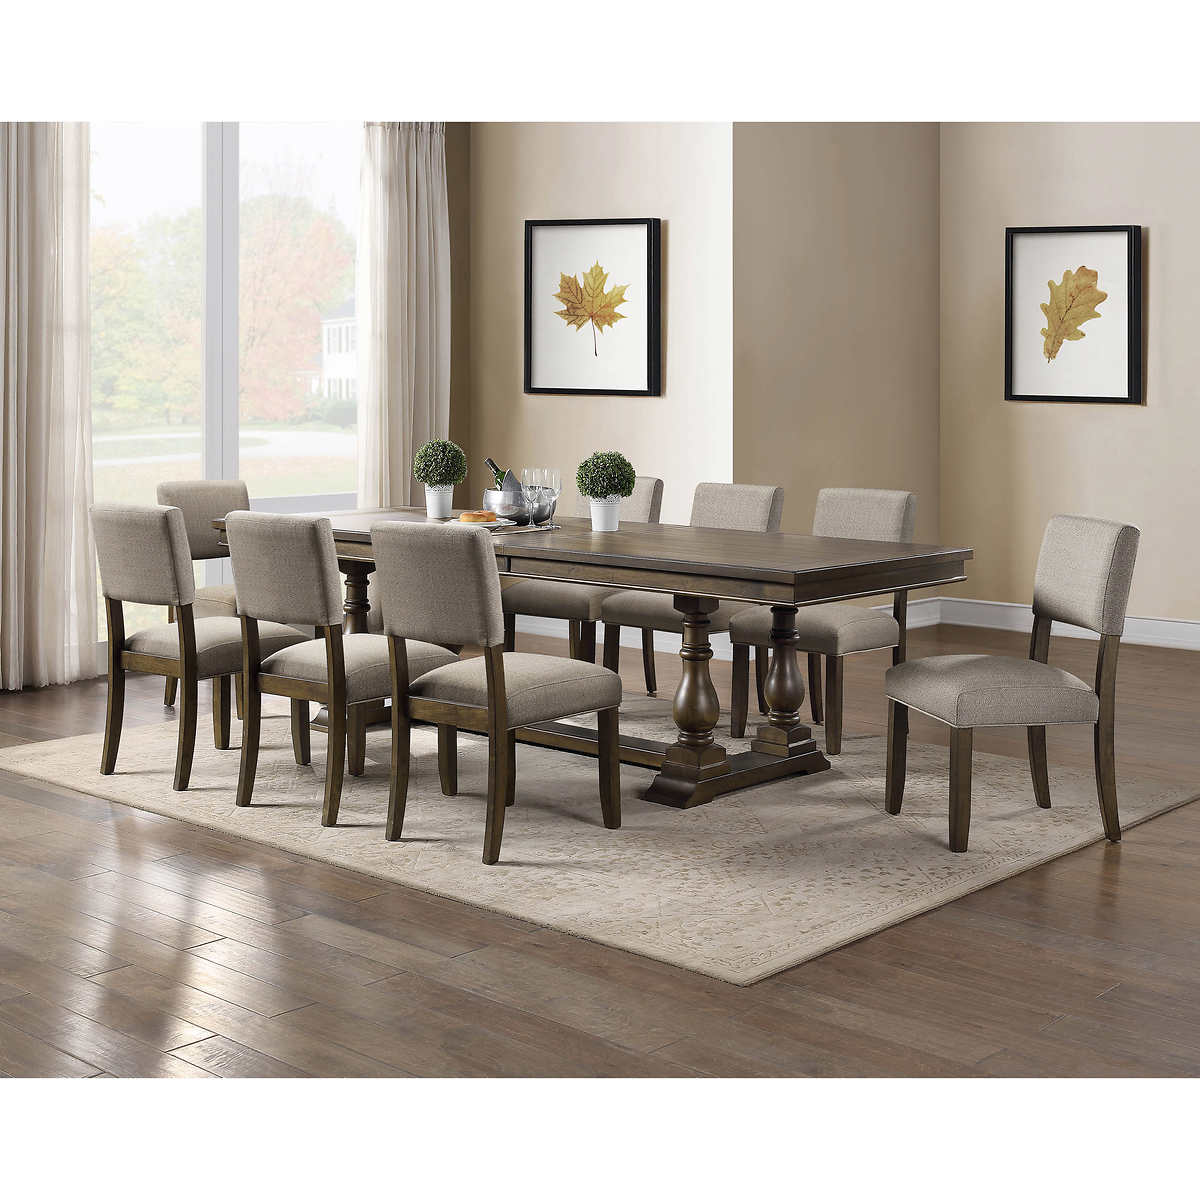 Thomasville Callan 9 Piece Dining Set